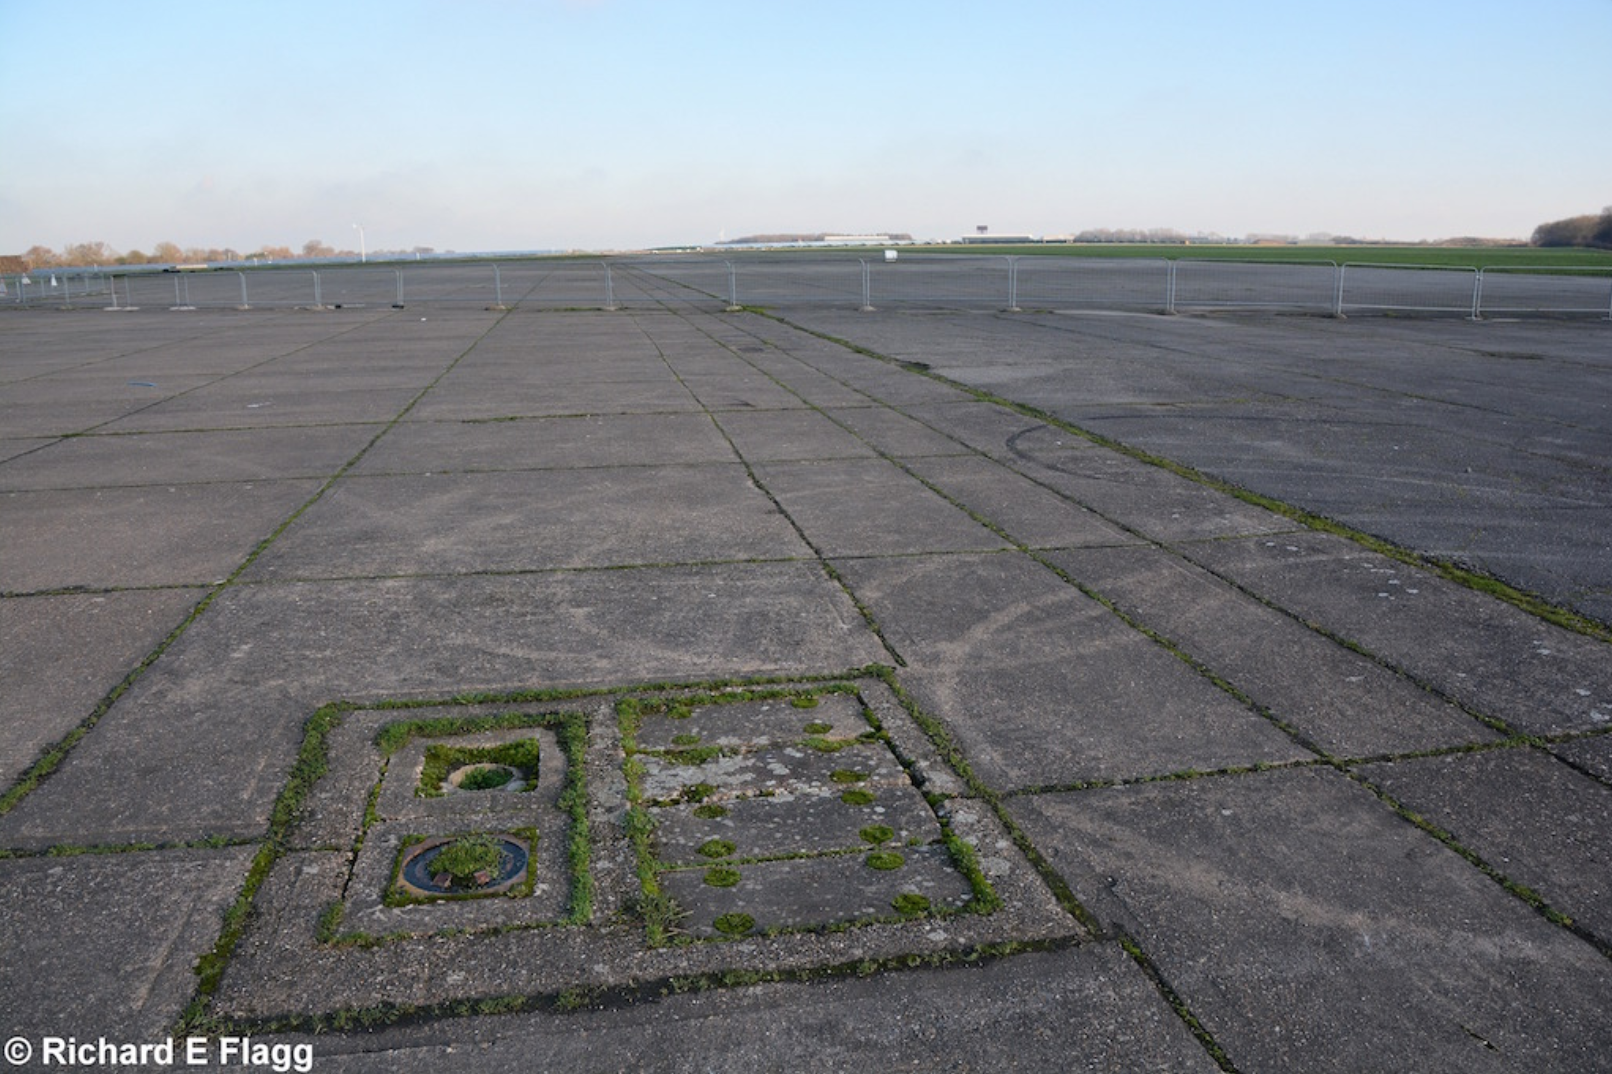 015Runway 08:26. Looking east from the runway 08 threshold - 20 January 2016.png